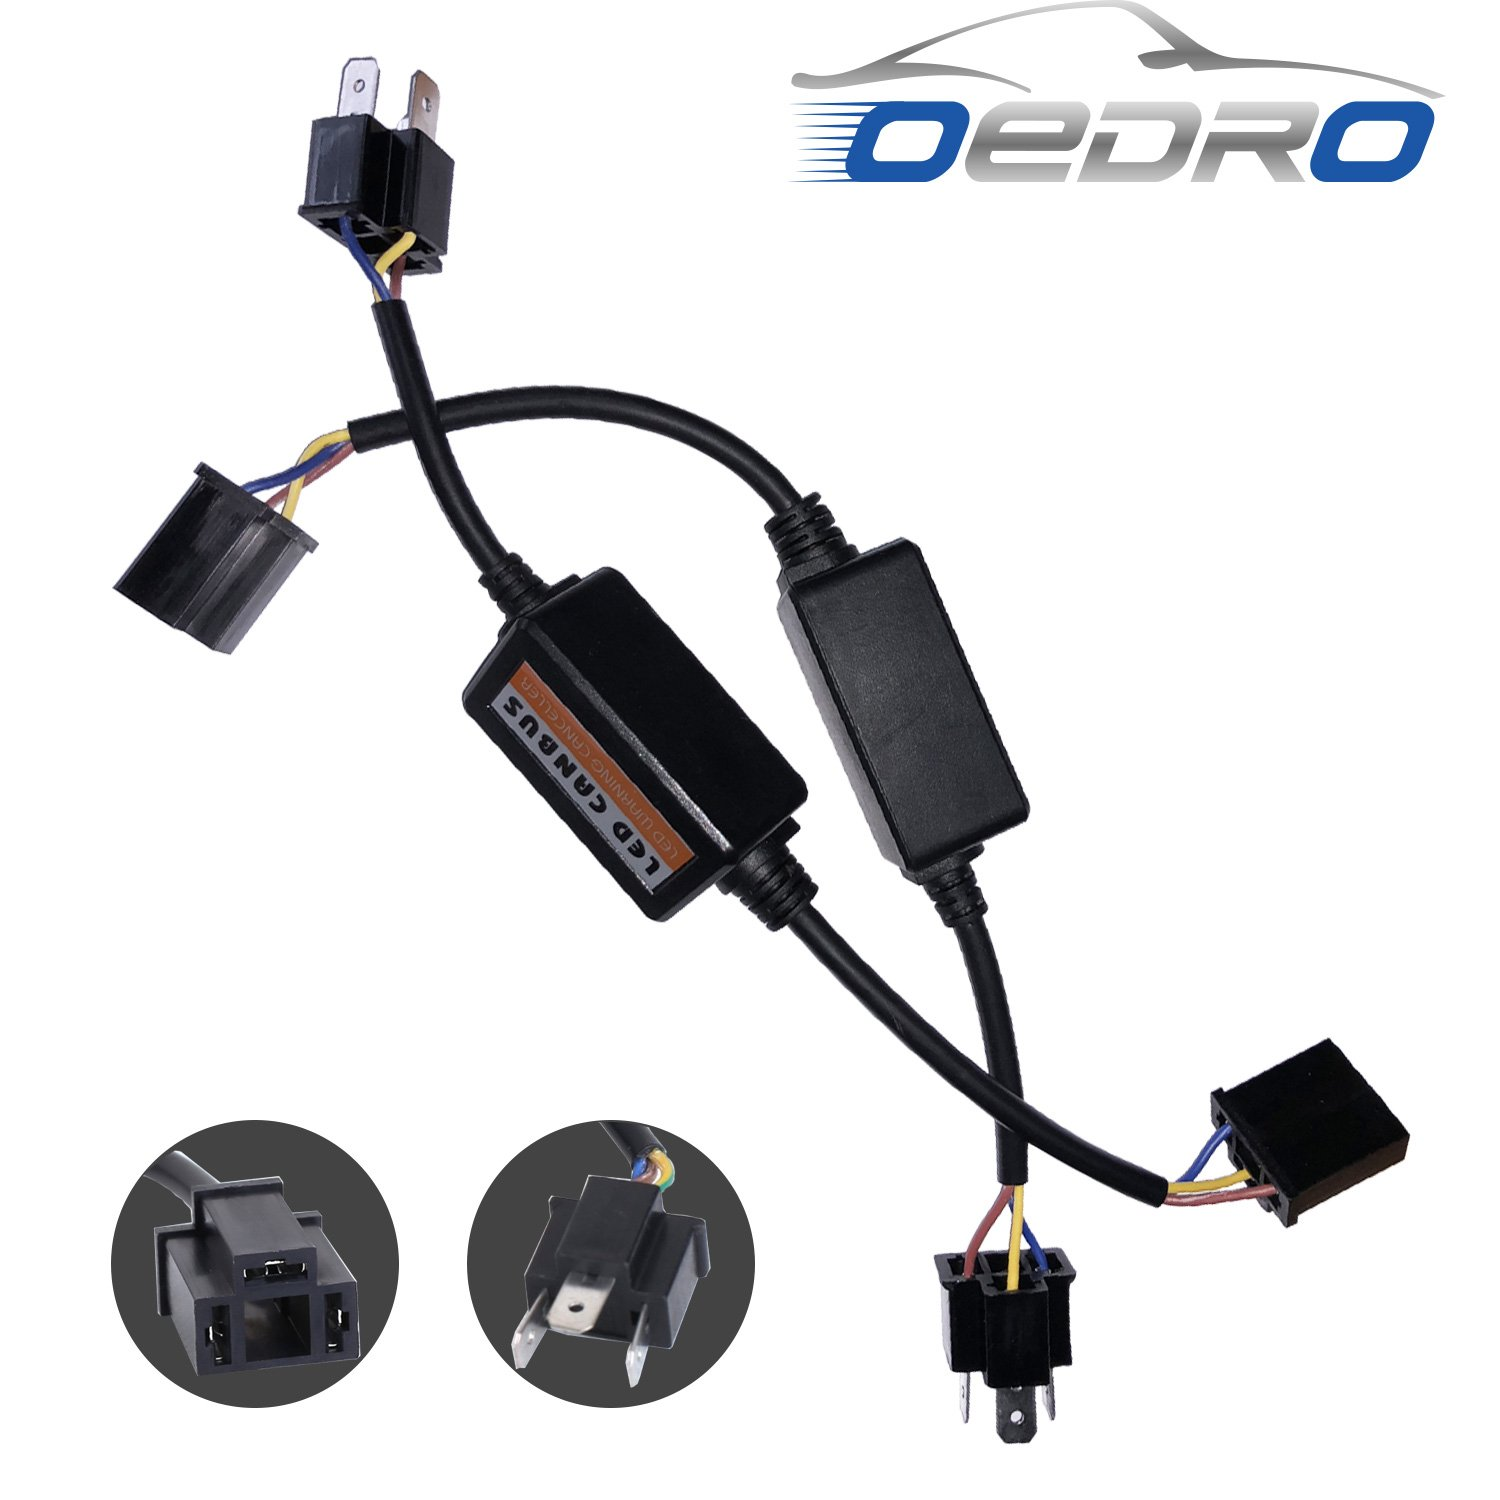 Pack of 2 CAR ROVER H4//9003//HB2 Decoder Canbus Resistor Anti-flicker Error Free Harness for LED Headlight Conversion Kit Warning